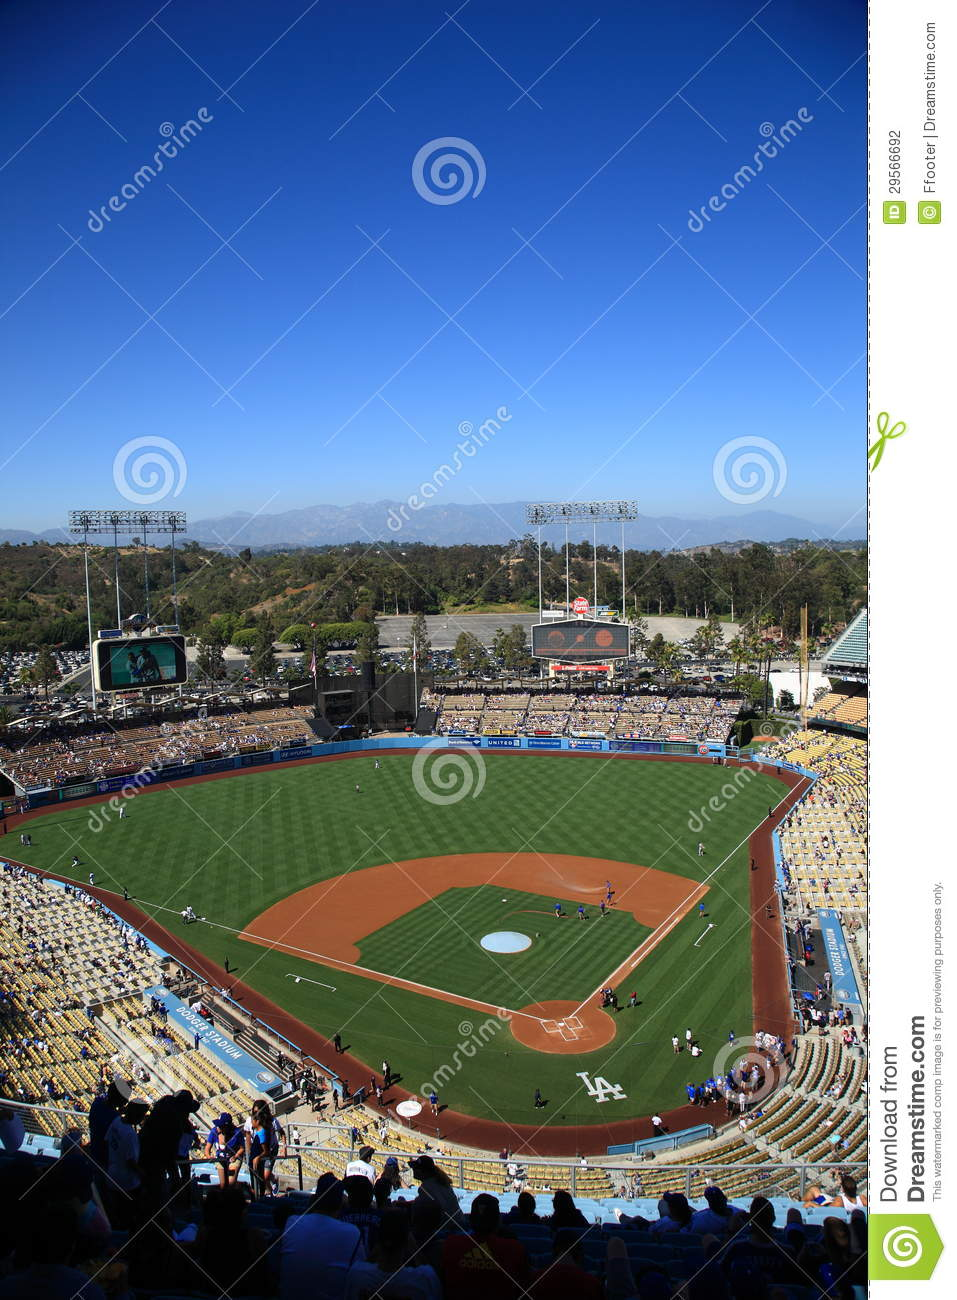 Pin dodger stadium los angeles dodgers 22193442 2560 for Dodger stadium wall mural